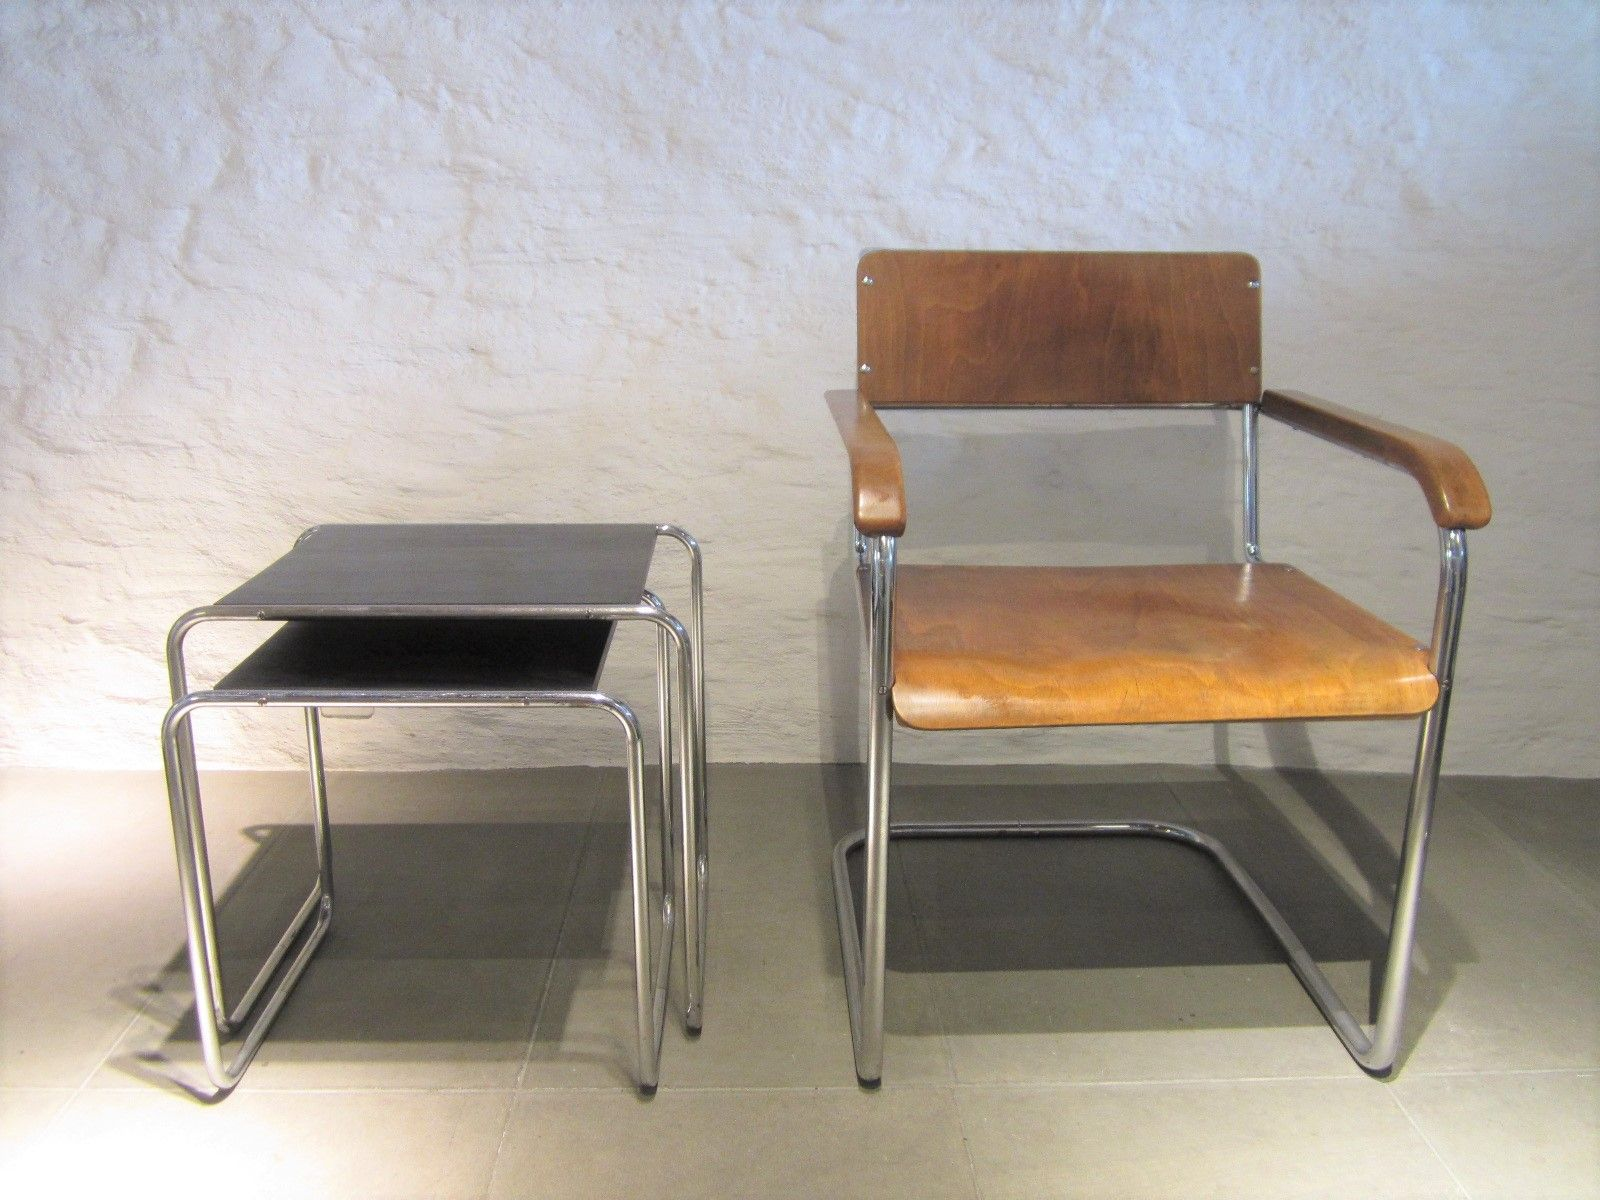 deutsche vintage b34 freischwinger von marcel breuer 2er set bei pamono kaufen. Black Bedroom Furniture Sets. Home Design Ideas